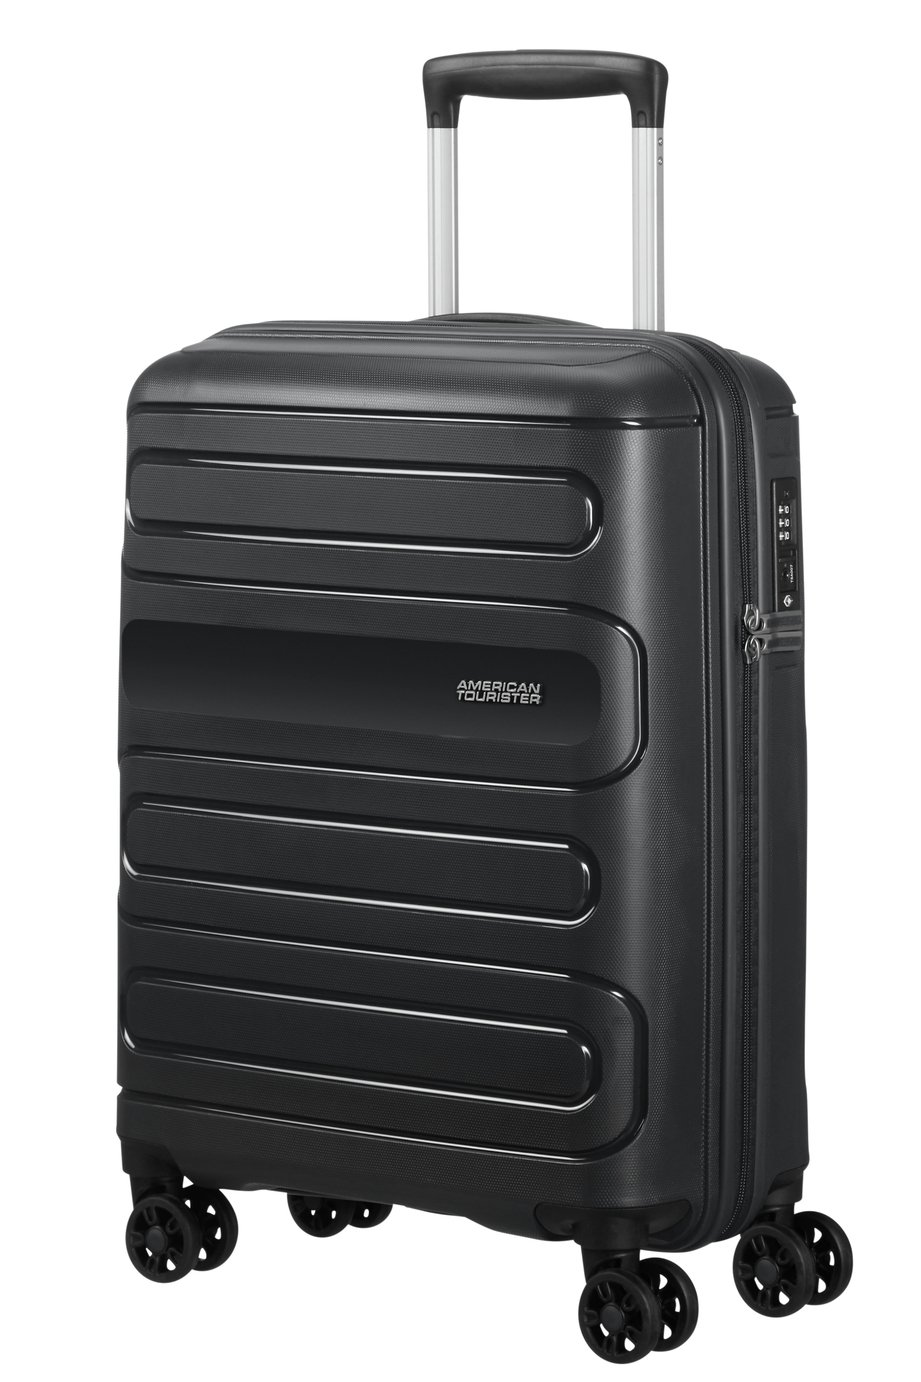 American Tourister Sunside 4 Wheel Hard Cabin Suitcase